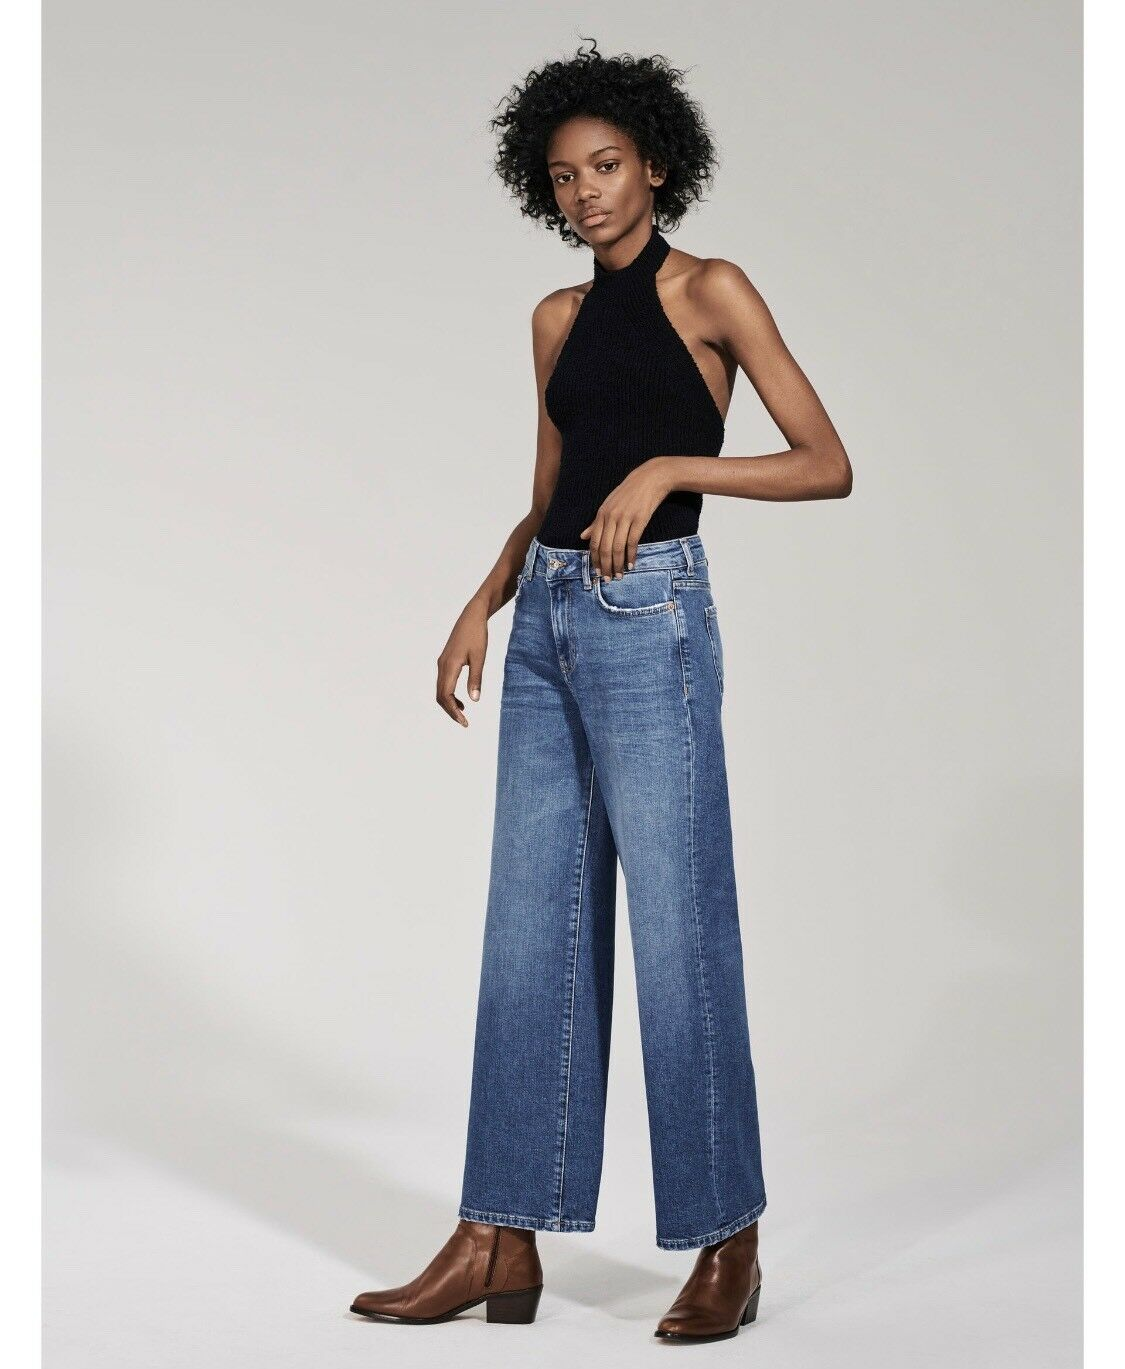 ZARA THE NEW STRAIGHT CULOTTE MALIBU blueE Sold Out Online